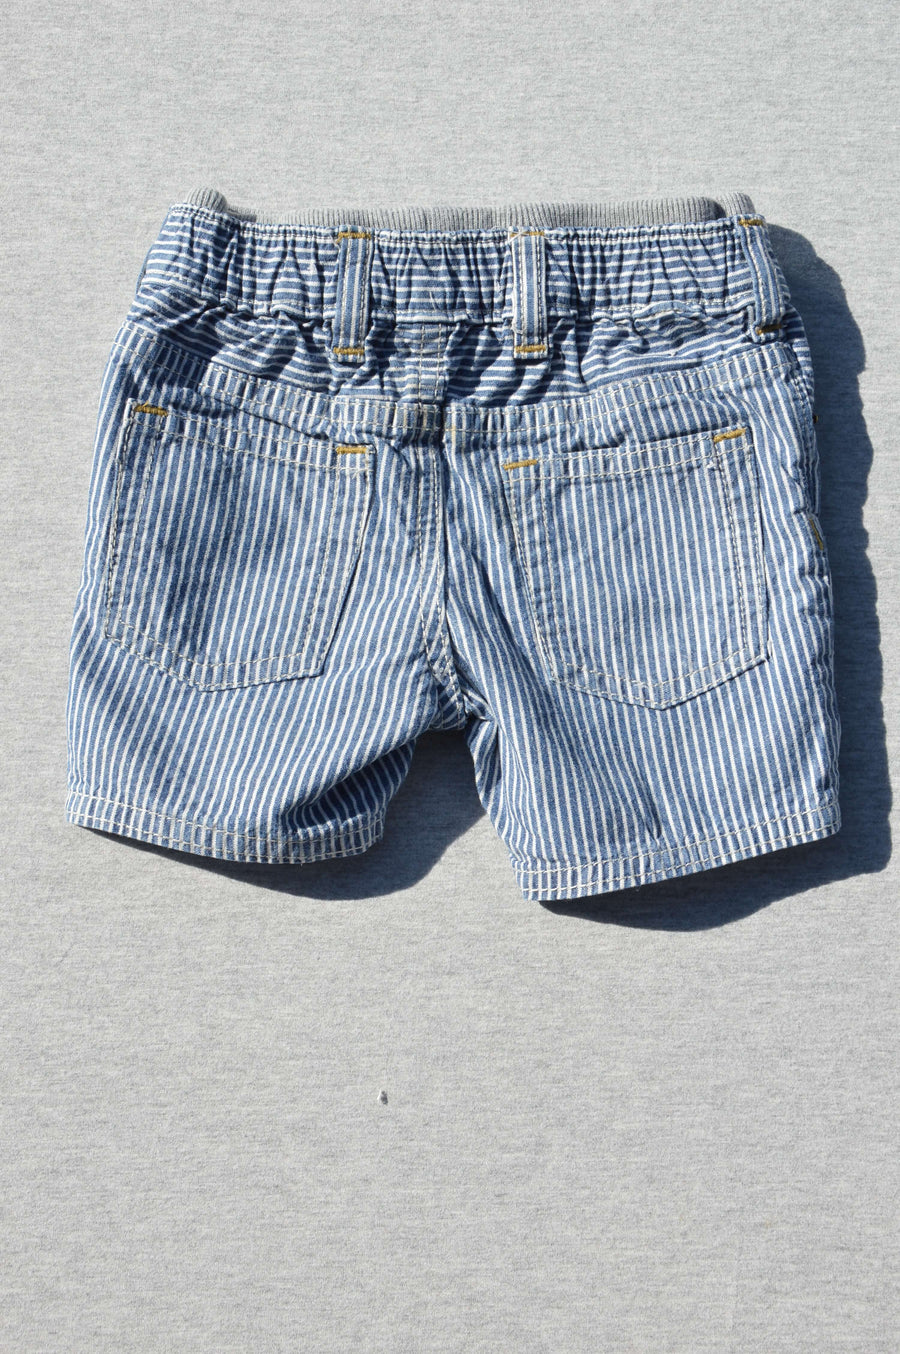 Gap - nearly new - blue & white striped denim shorts, size 6-12m